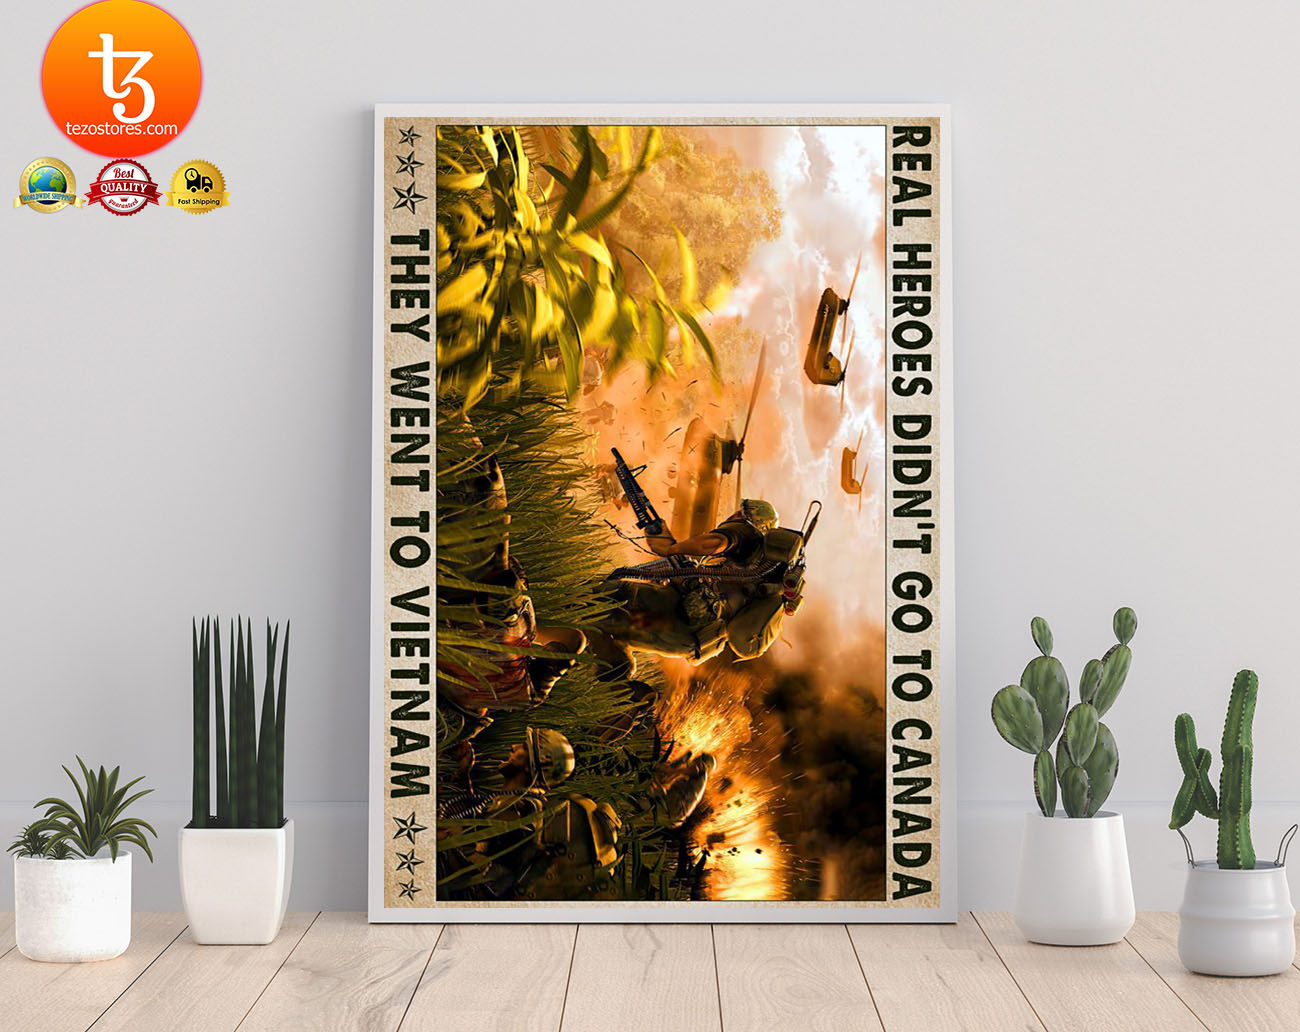 Real heroes didn't go to canada they went to vietnam poster 23